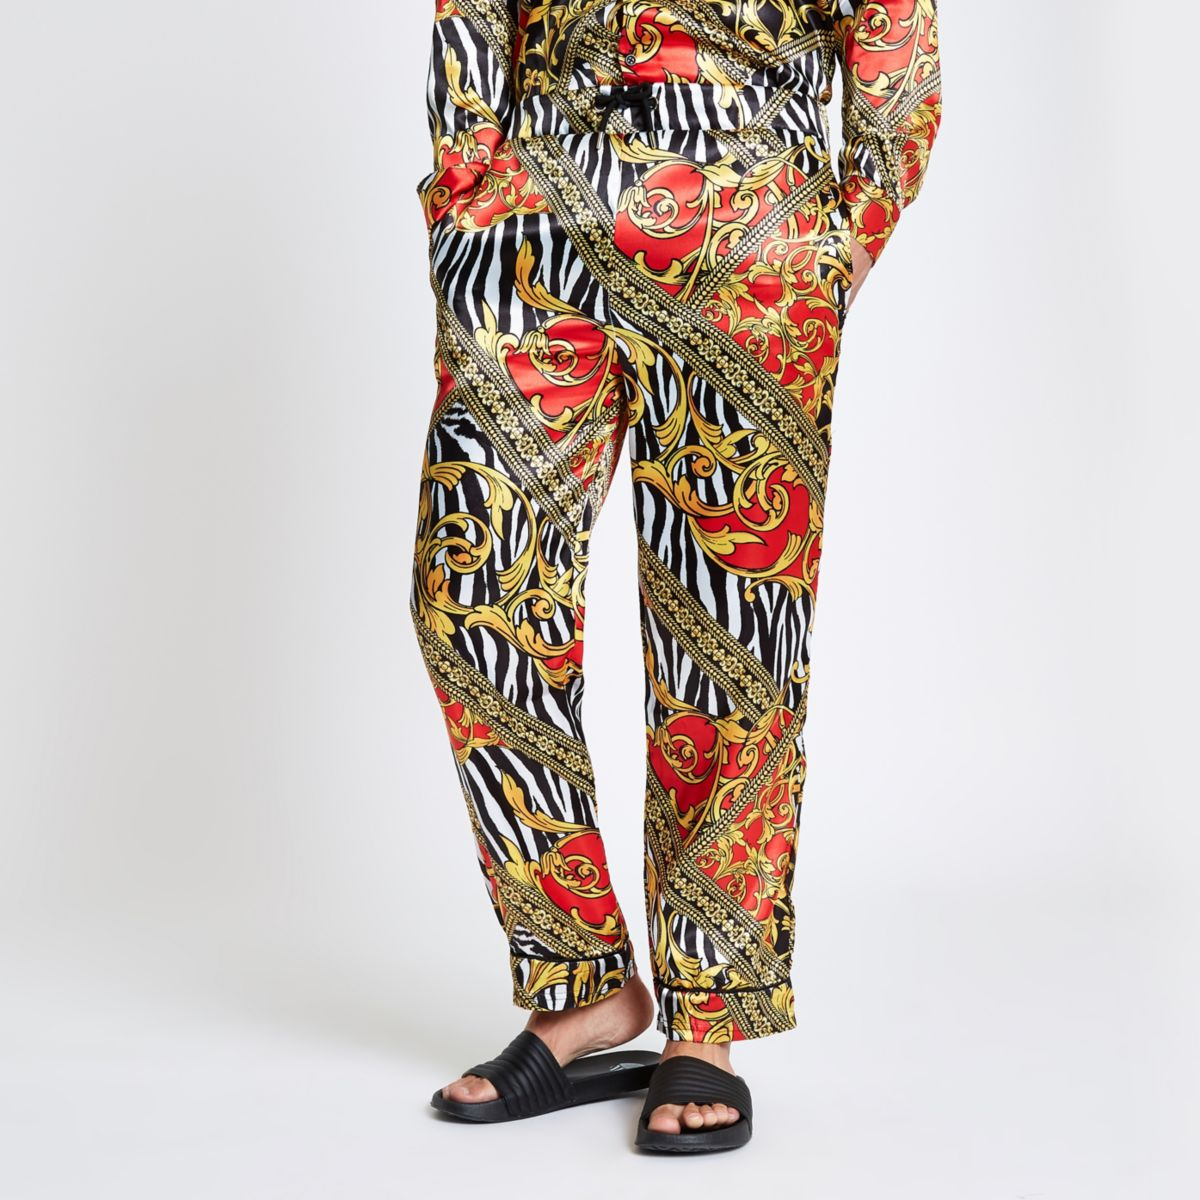 Jaded yellow zebra print pants